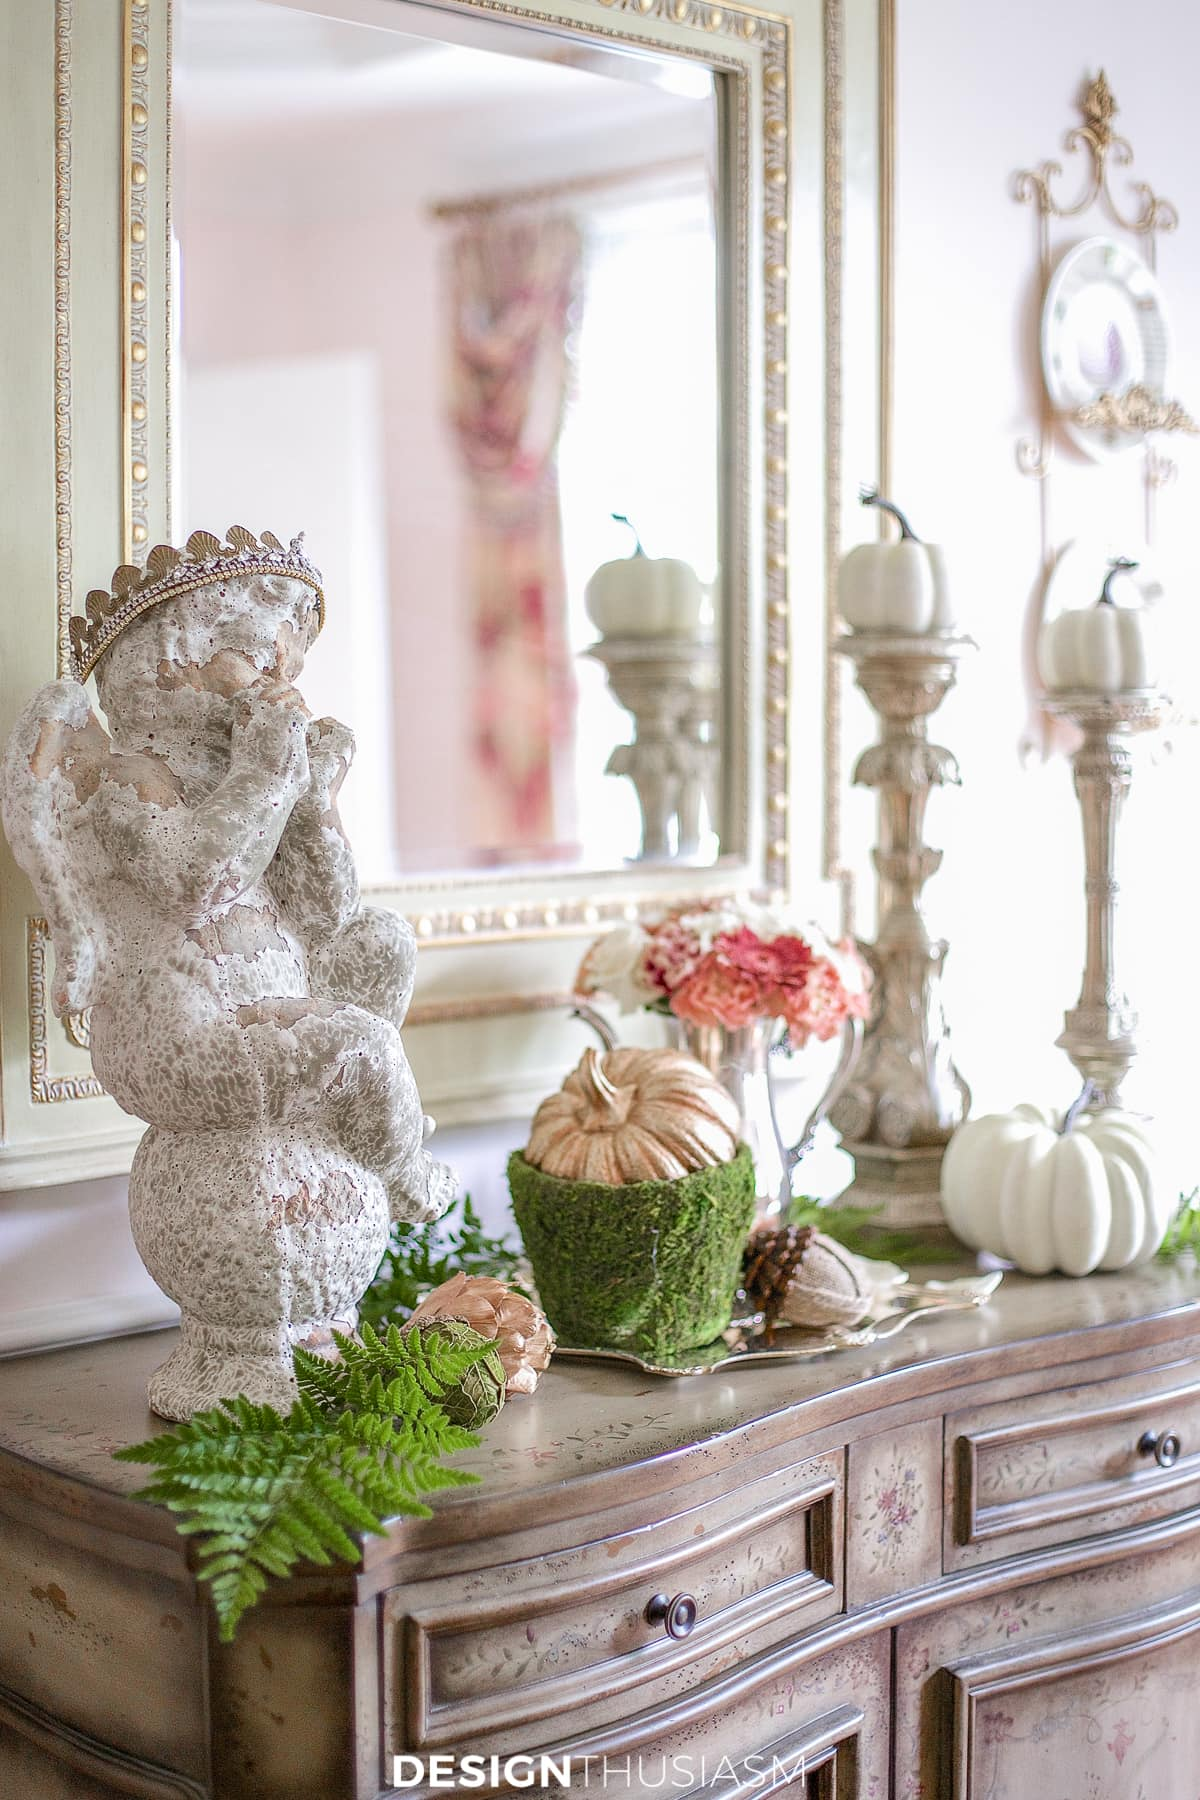 autumn decorations in a fall vignette